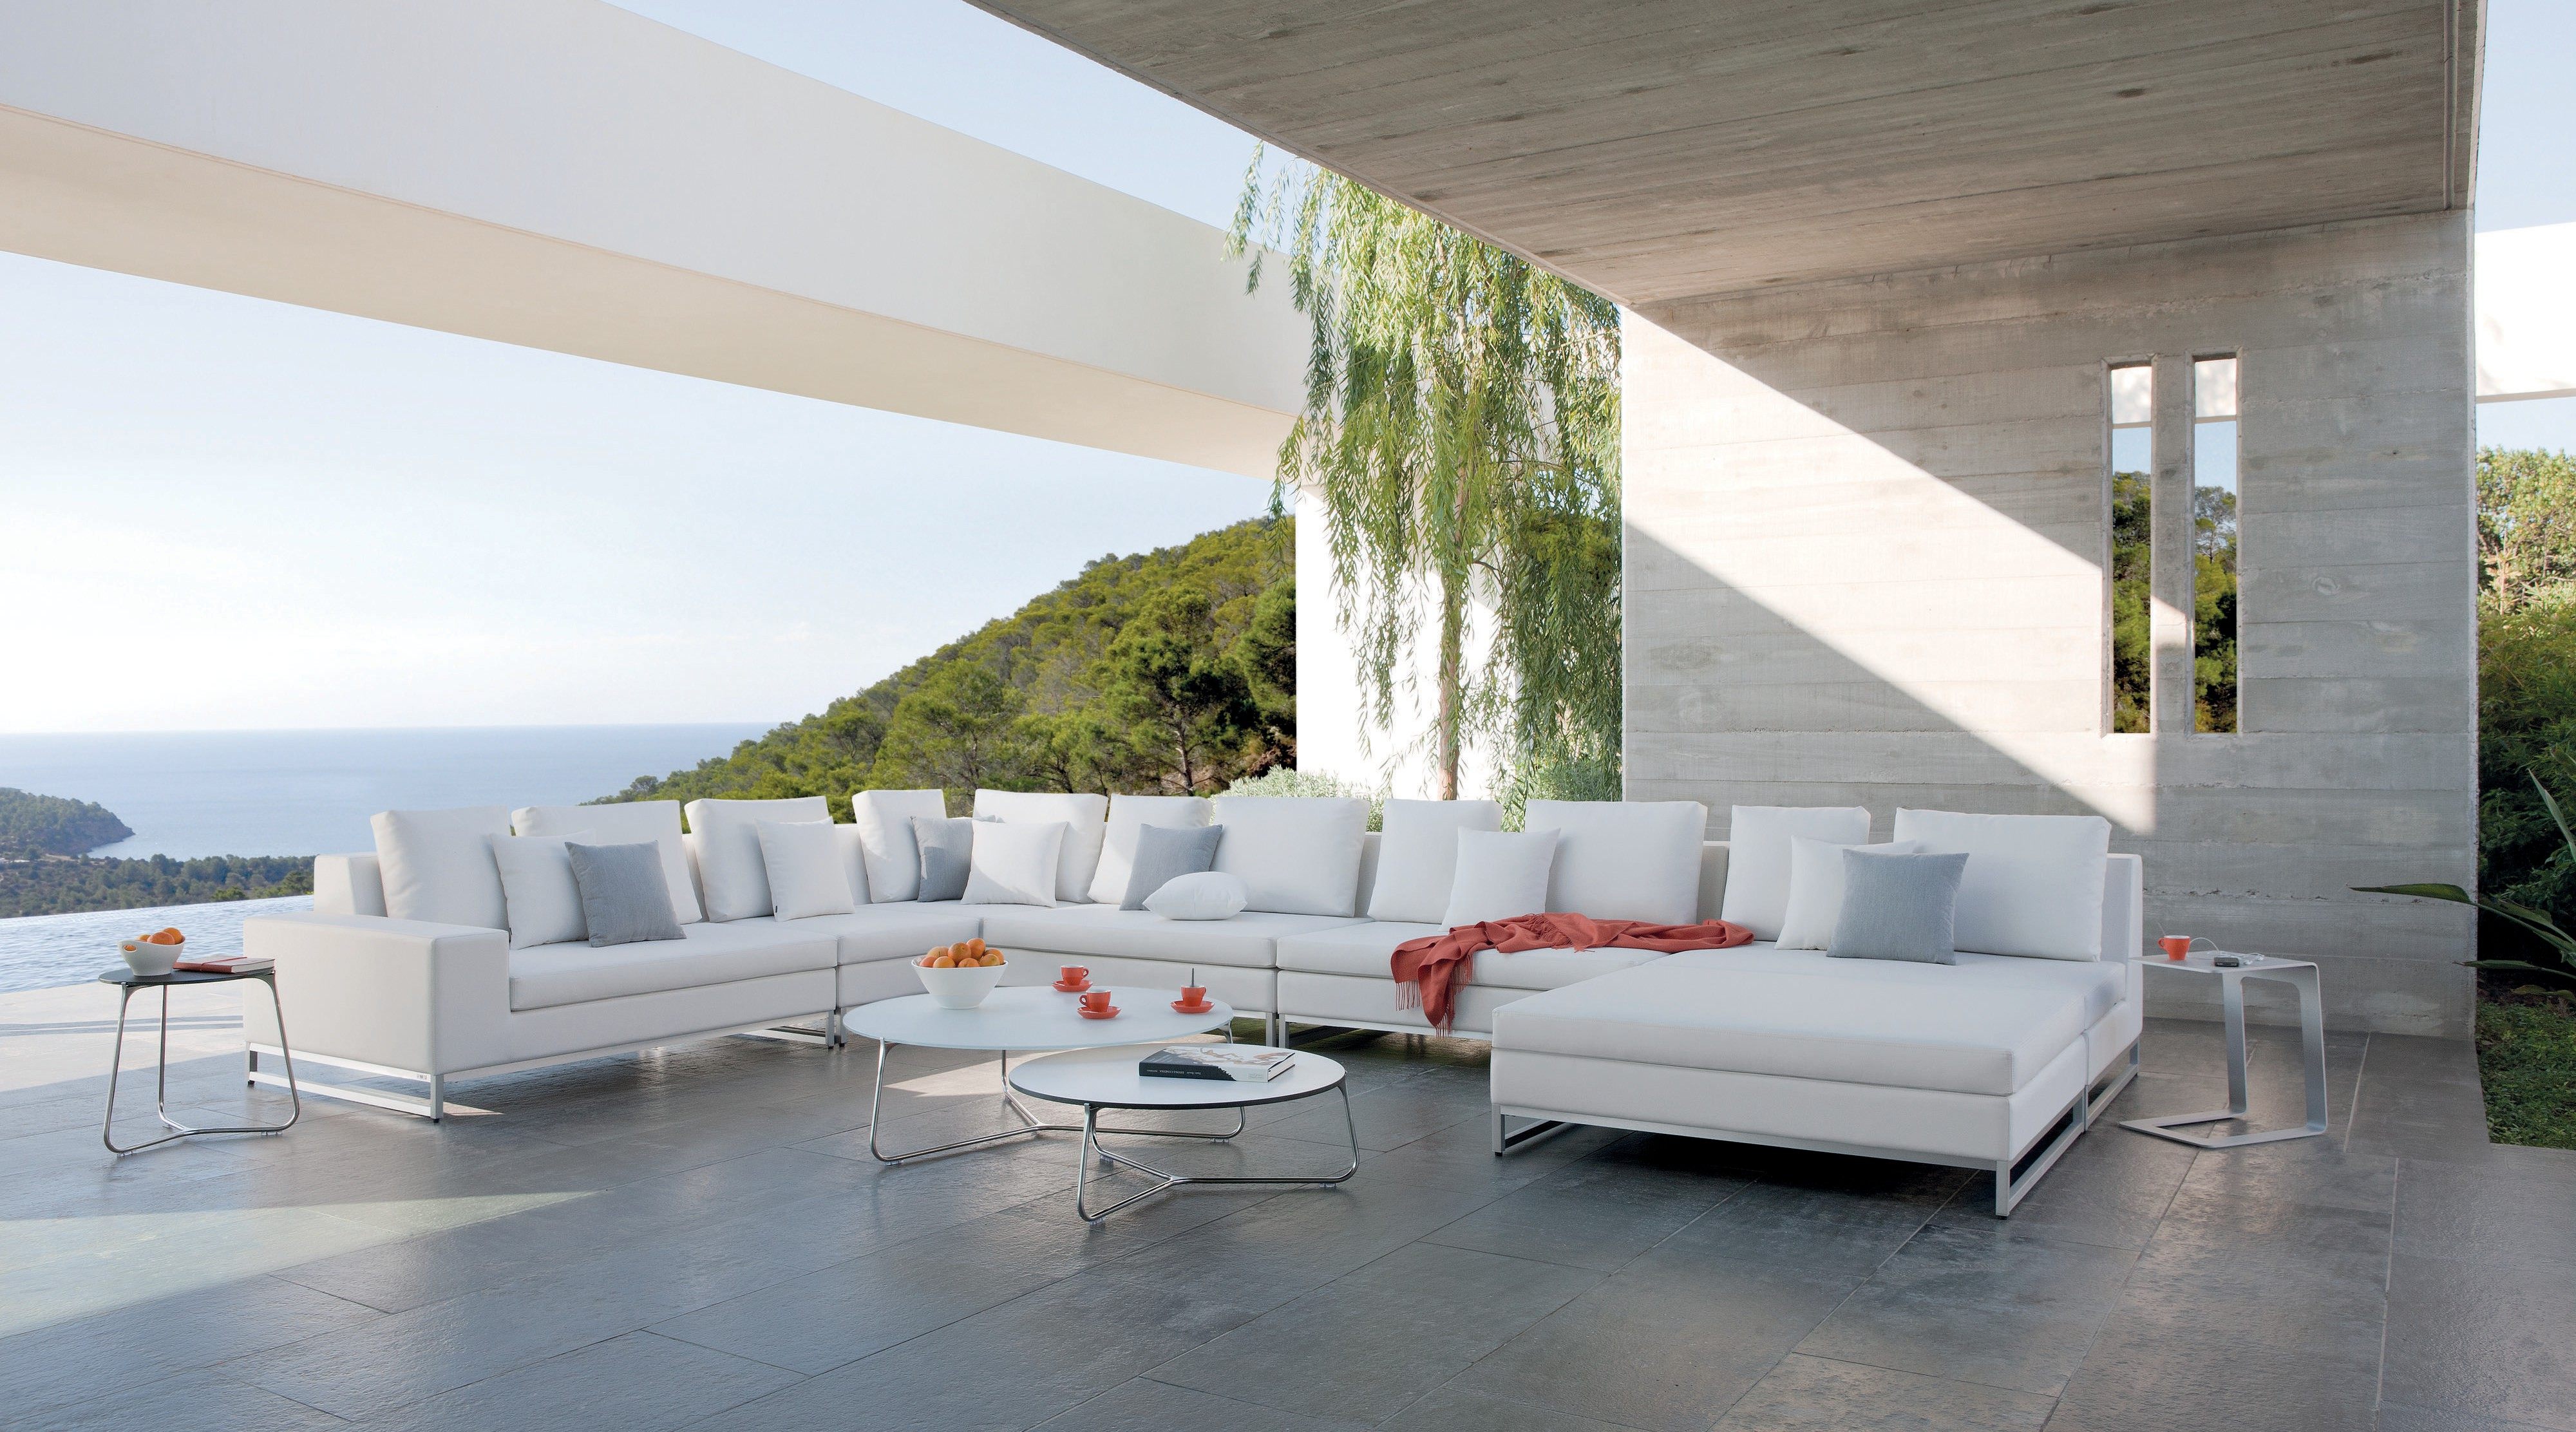 Its Summer And The Outdoor Living Is Easy At Miromar Design